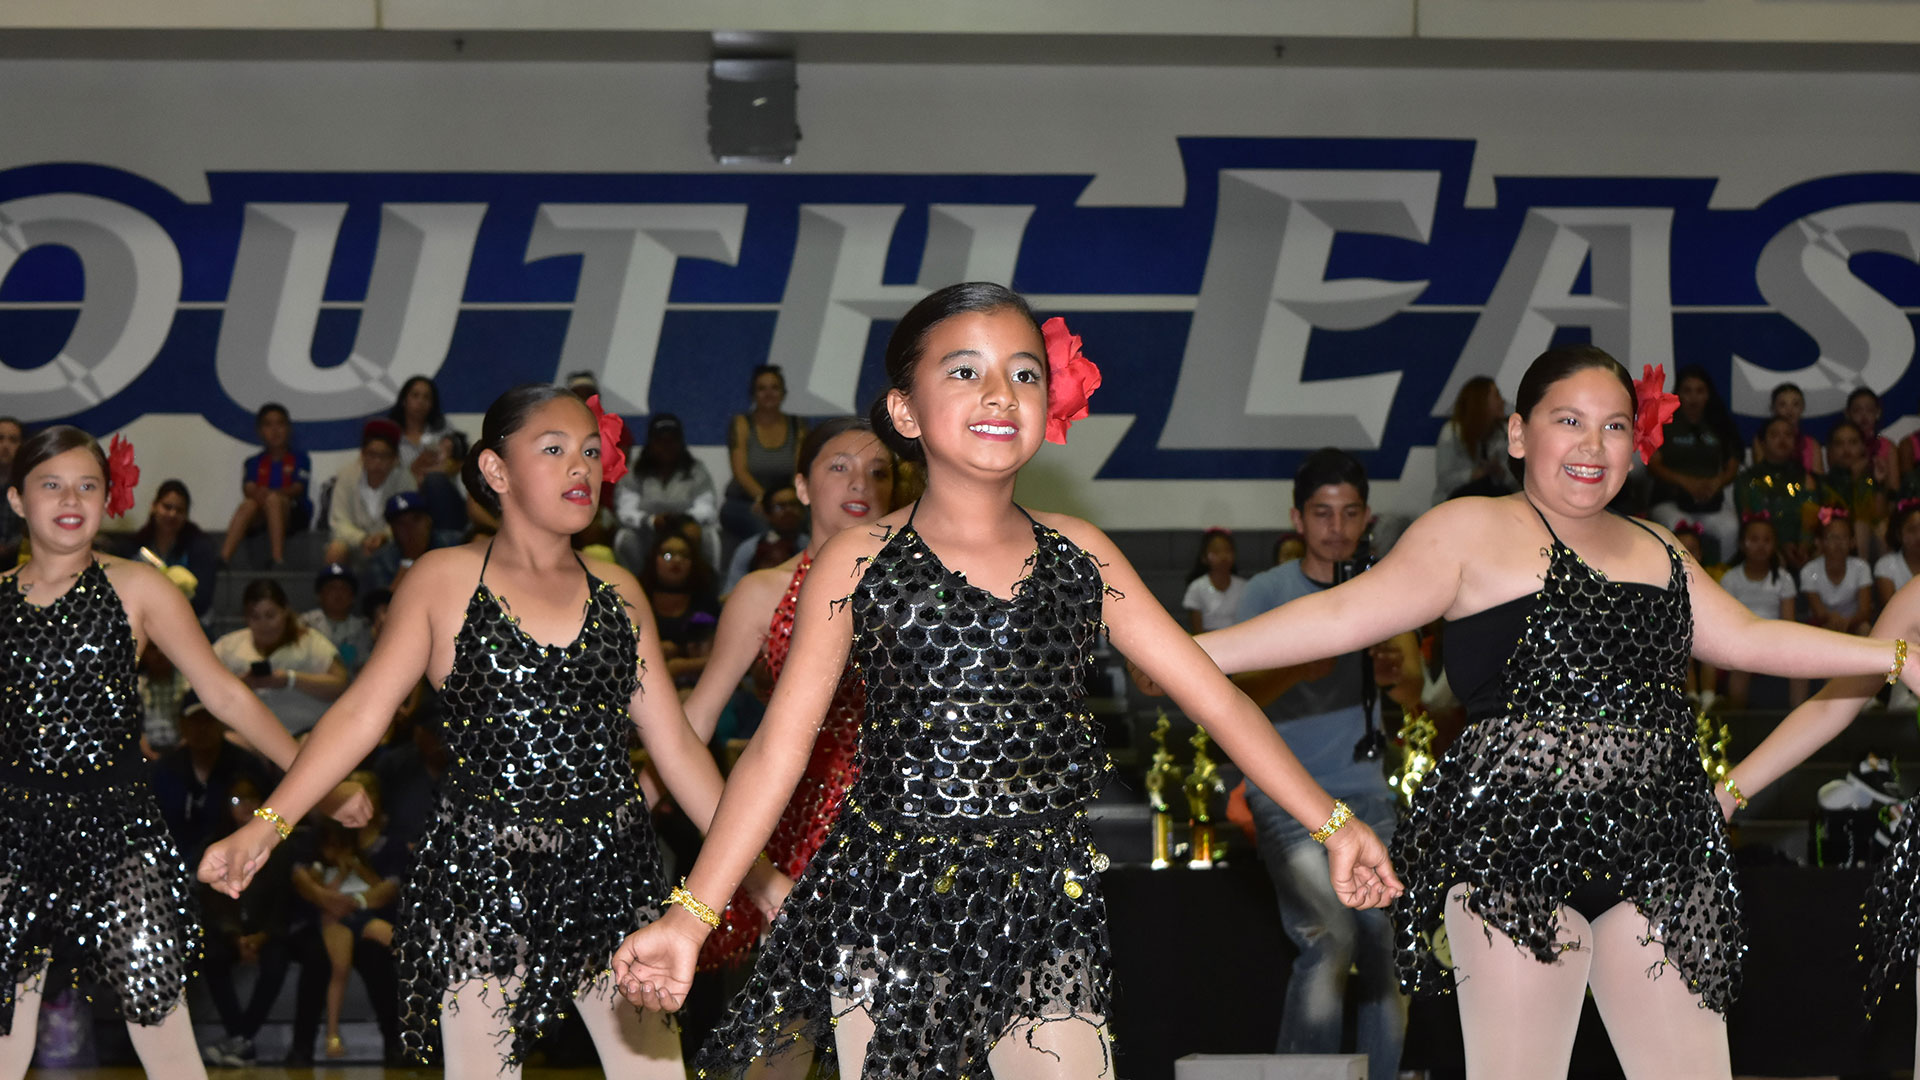 girls performing in sparkly costumes during dance competition